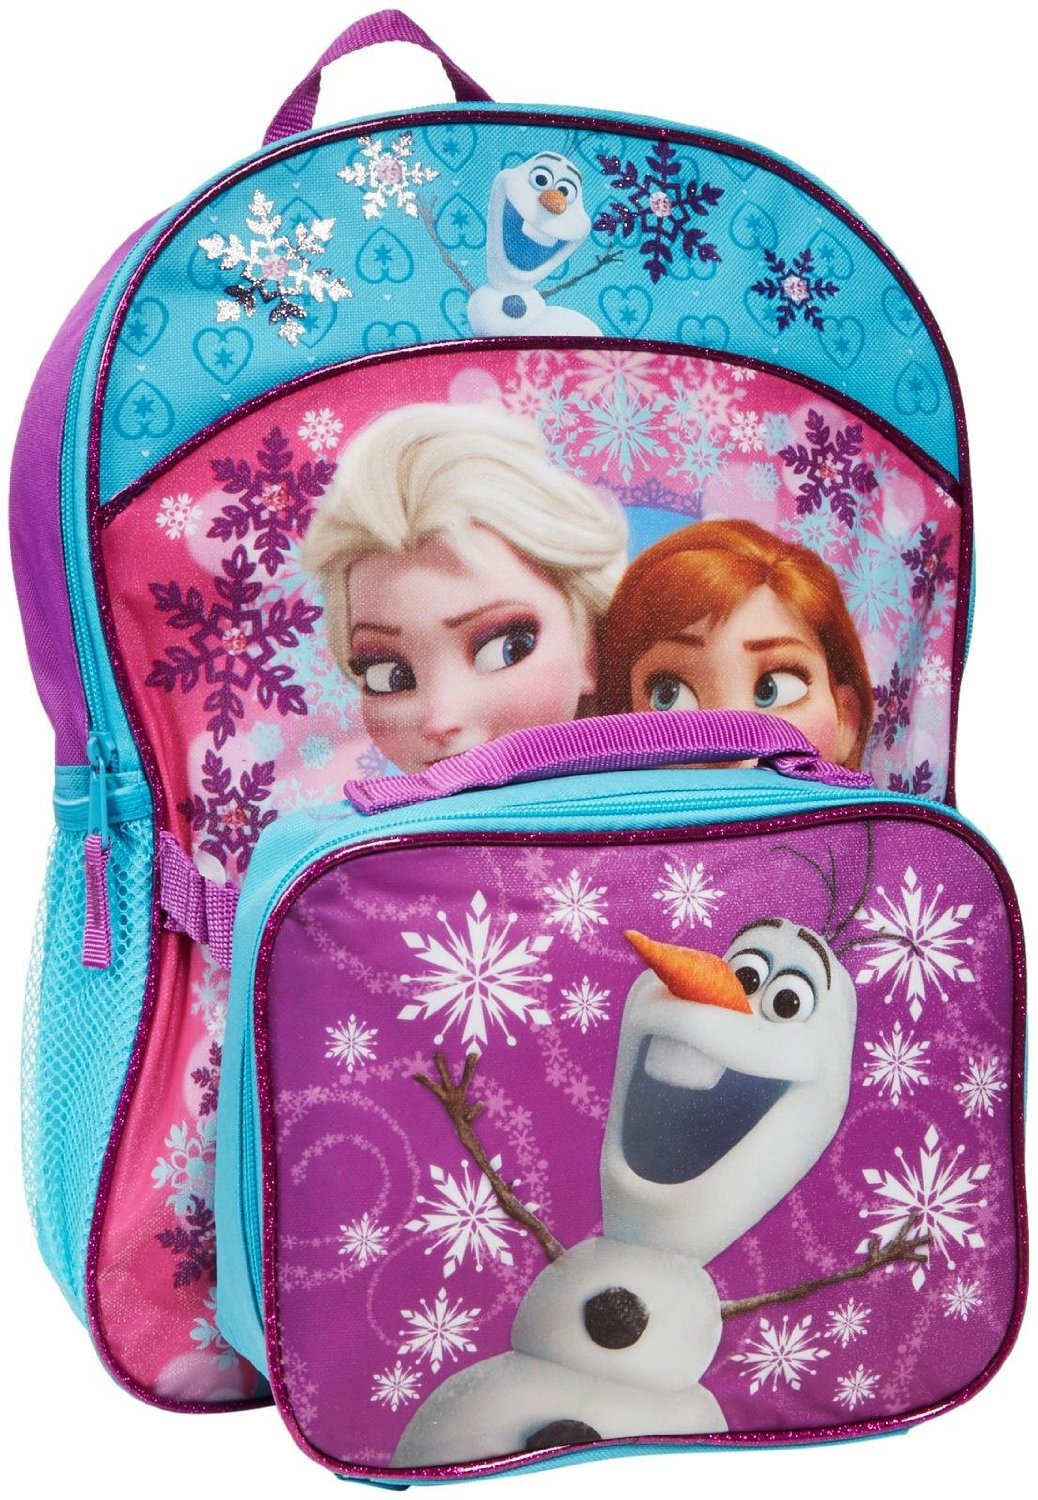 Disney Frozen Backpack with Matching Lunch Kit 14151